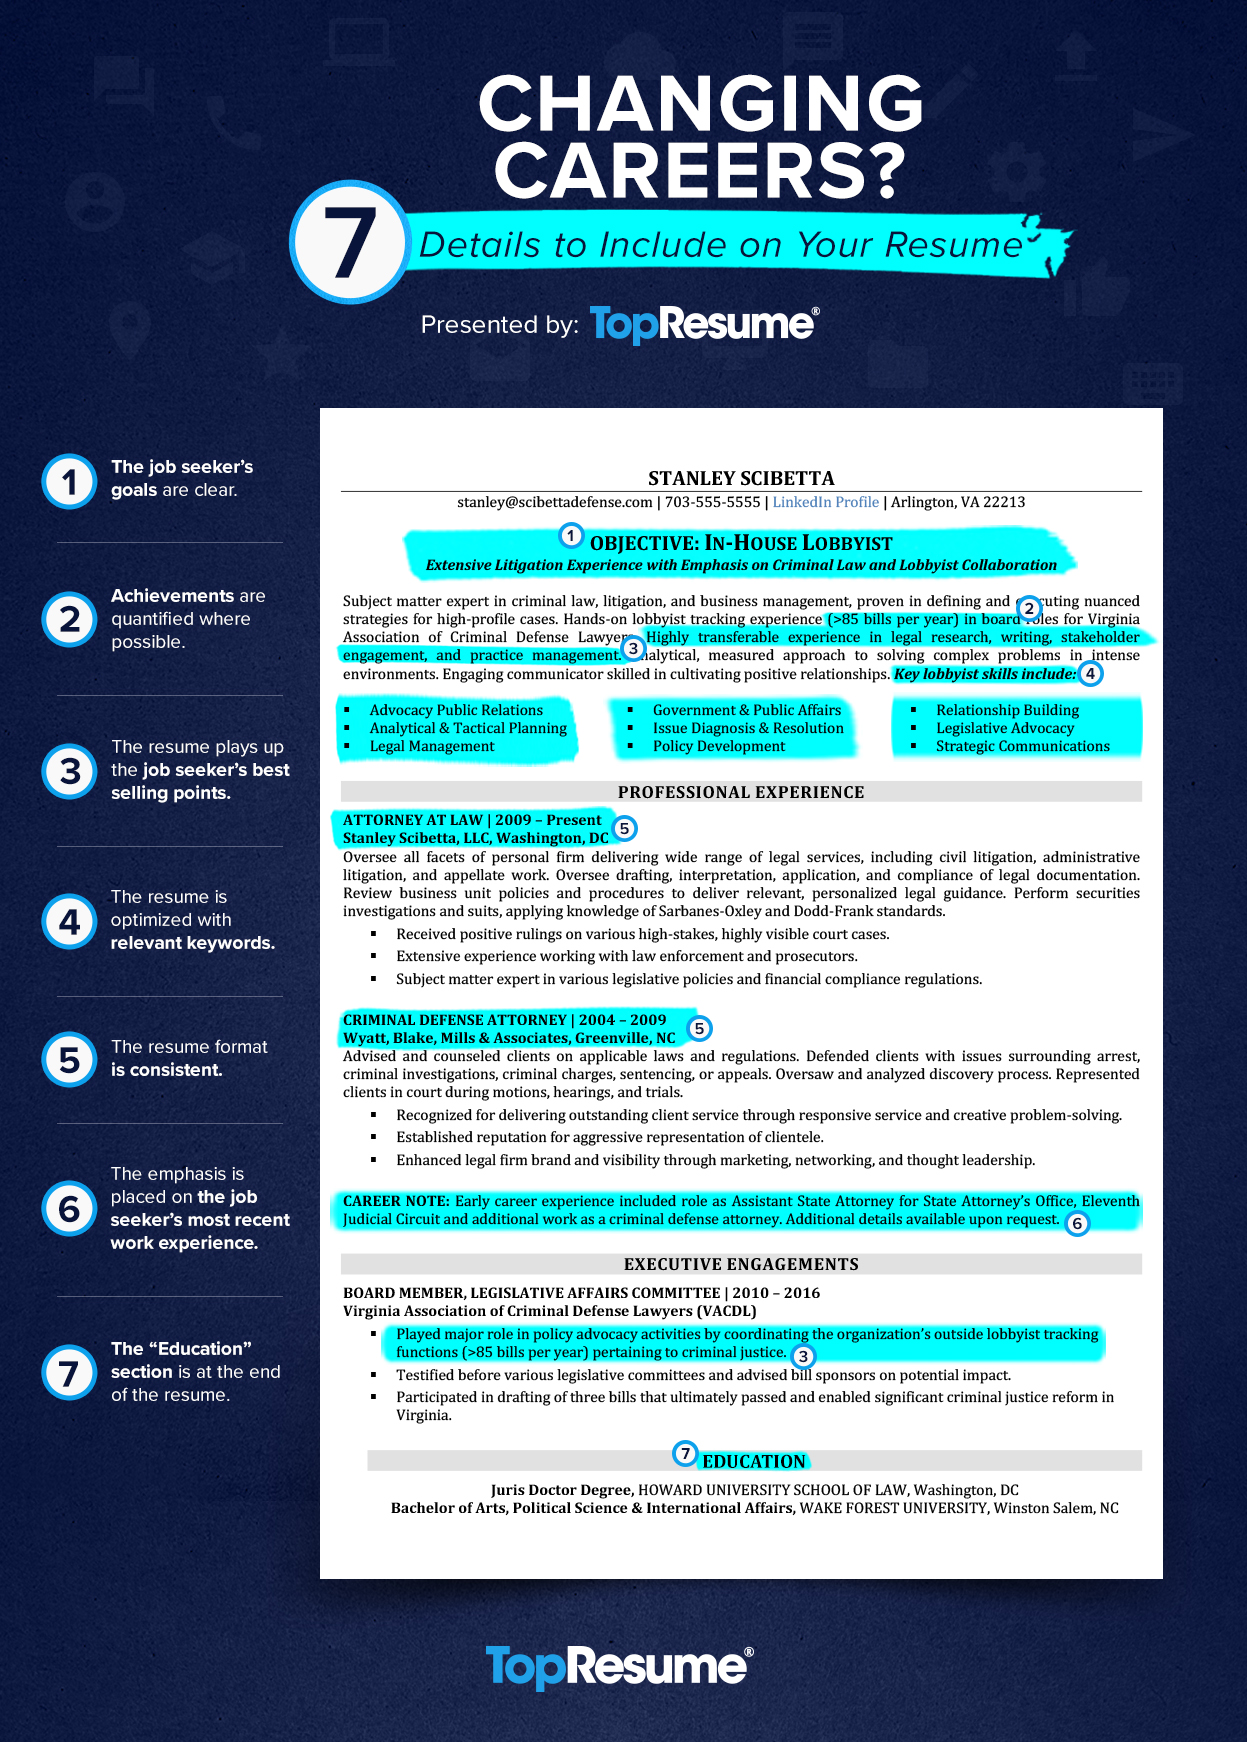 Changing Careers 7 Details To Include On Your Resume Topresume